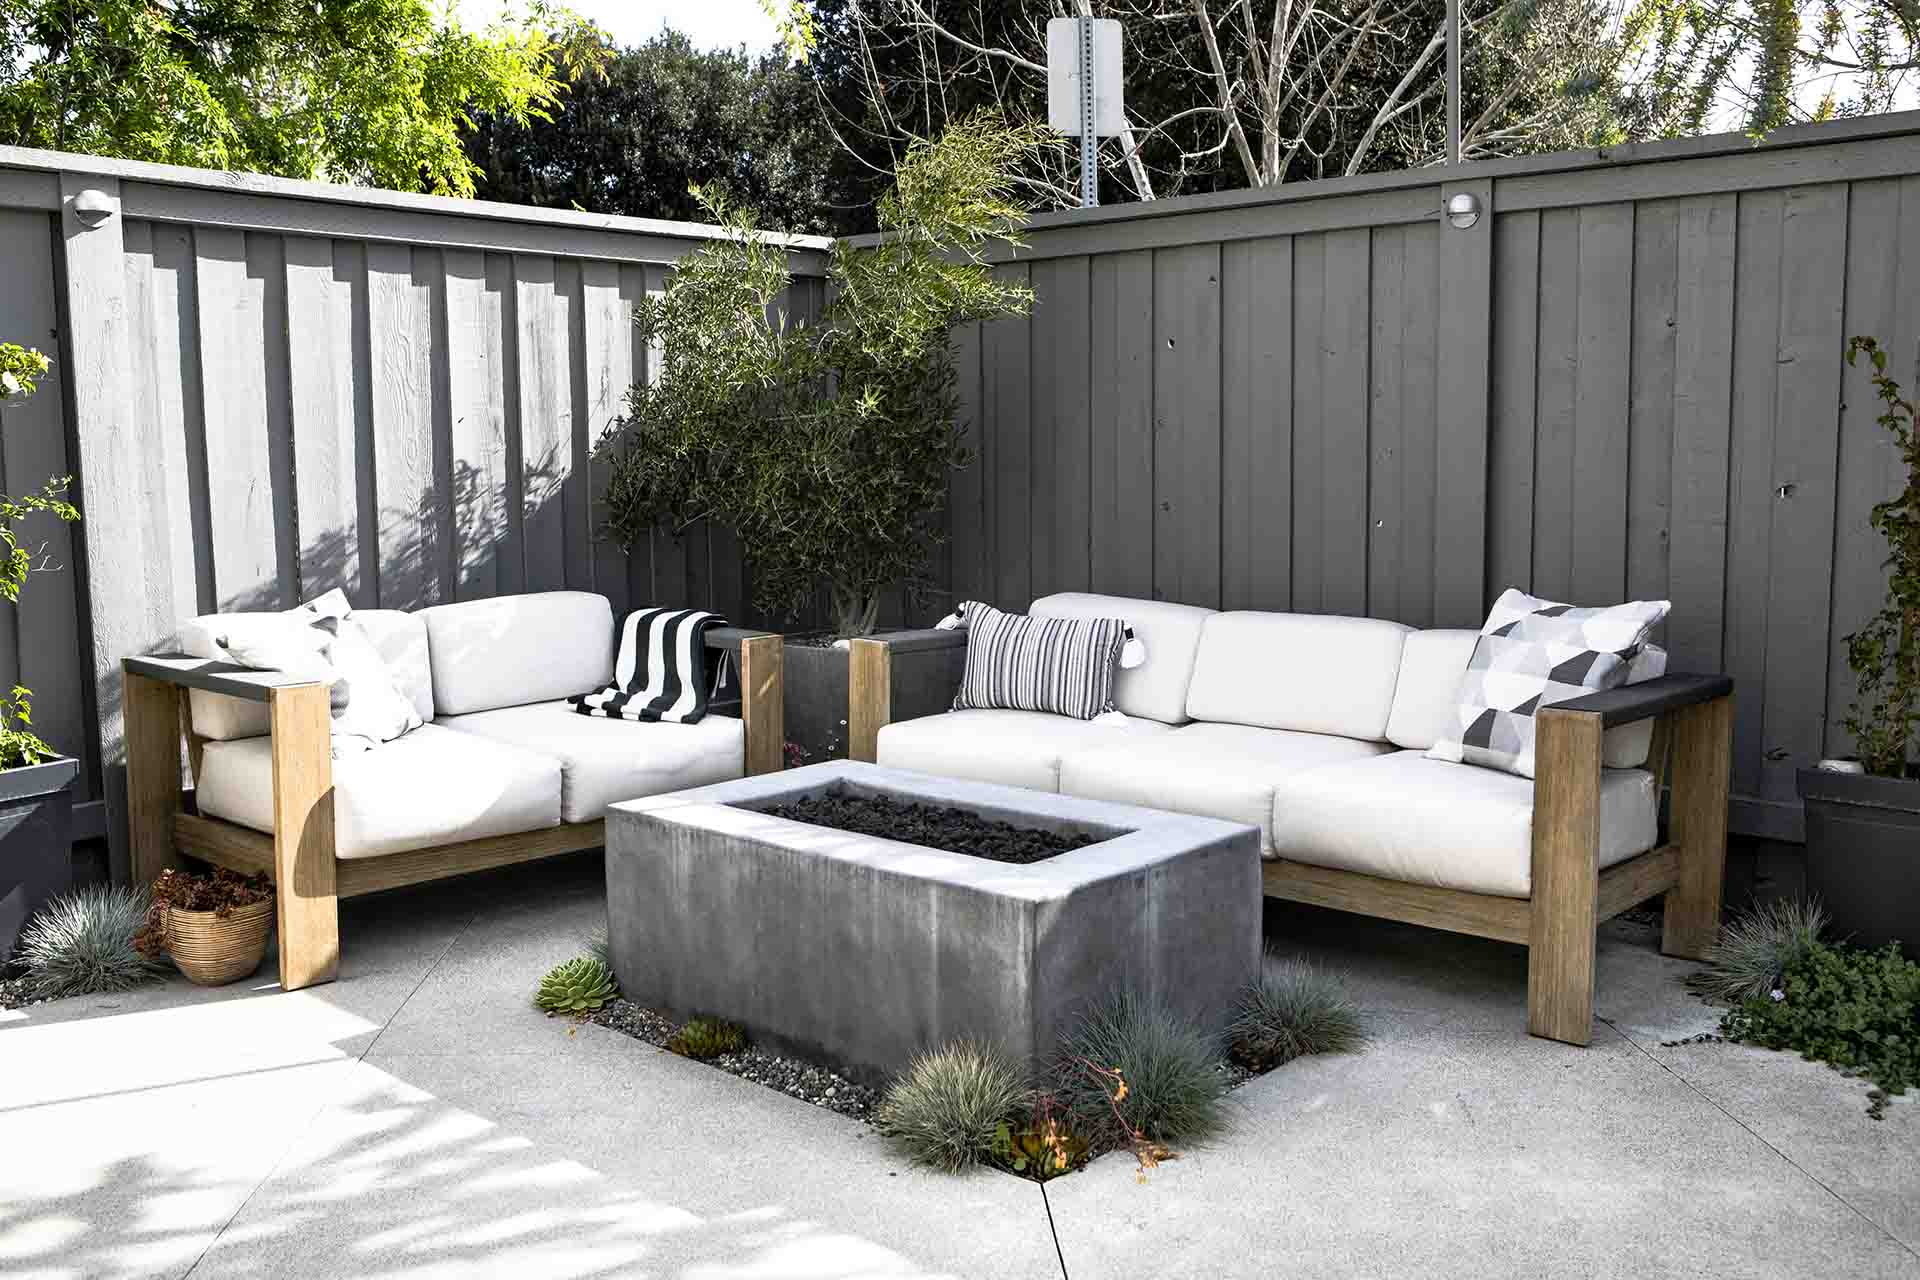 How Do I Design An Amazing Outdoor Space?